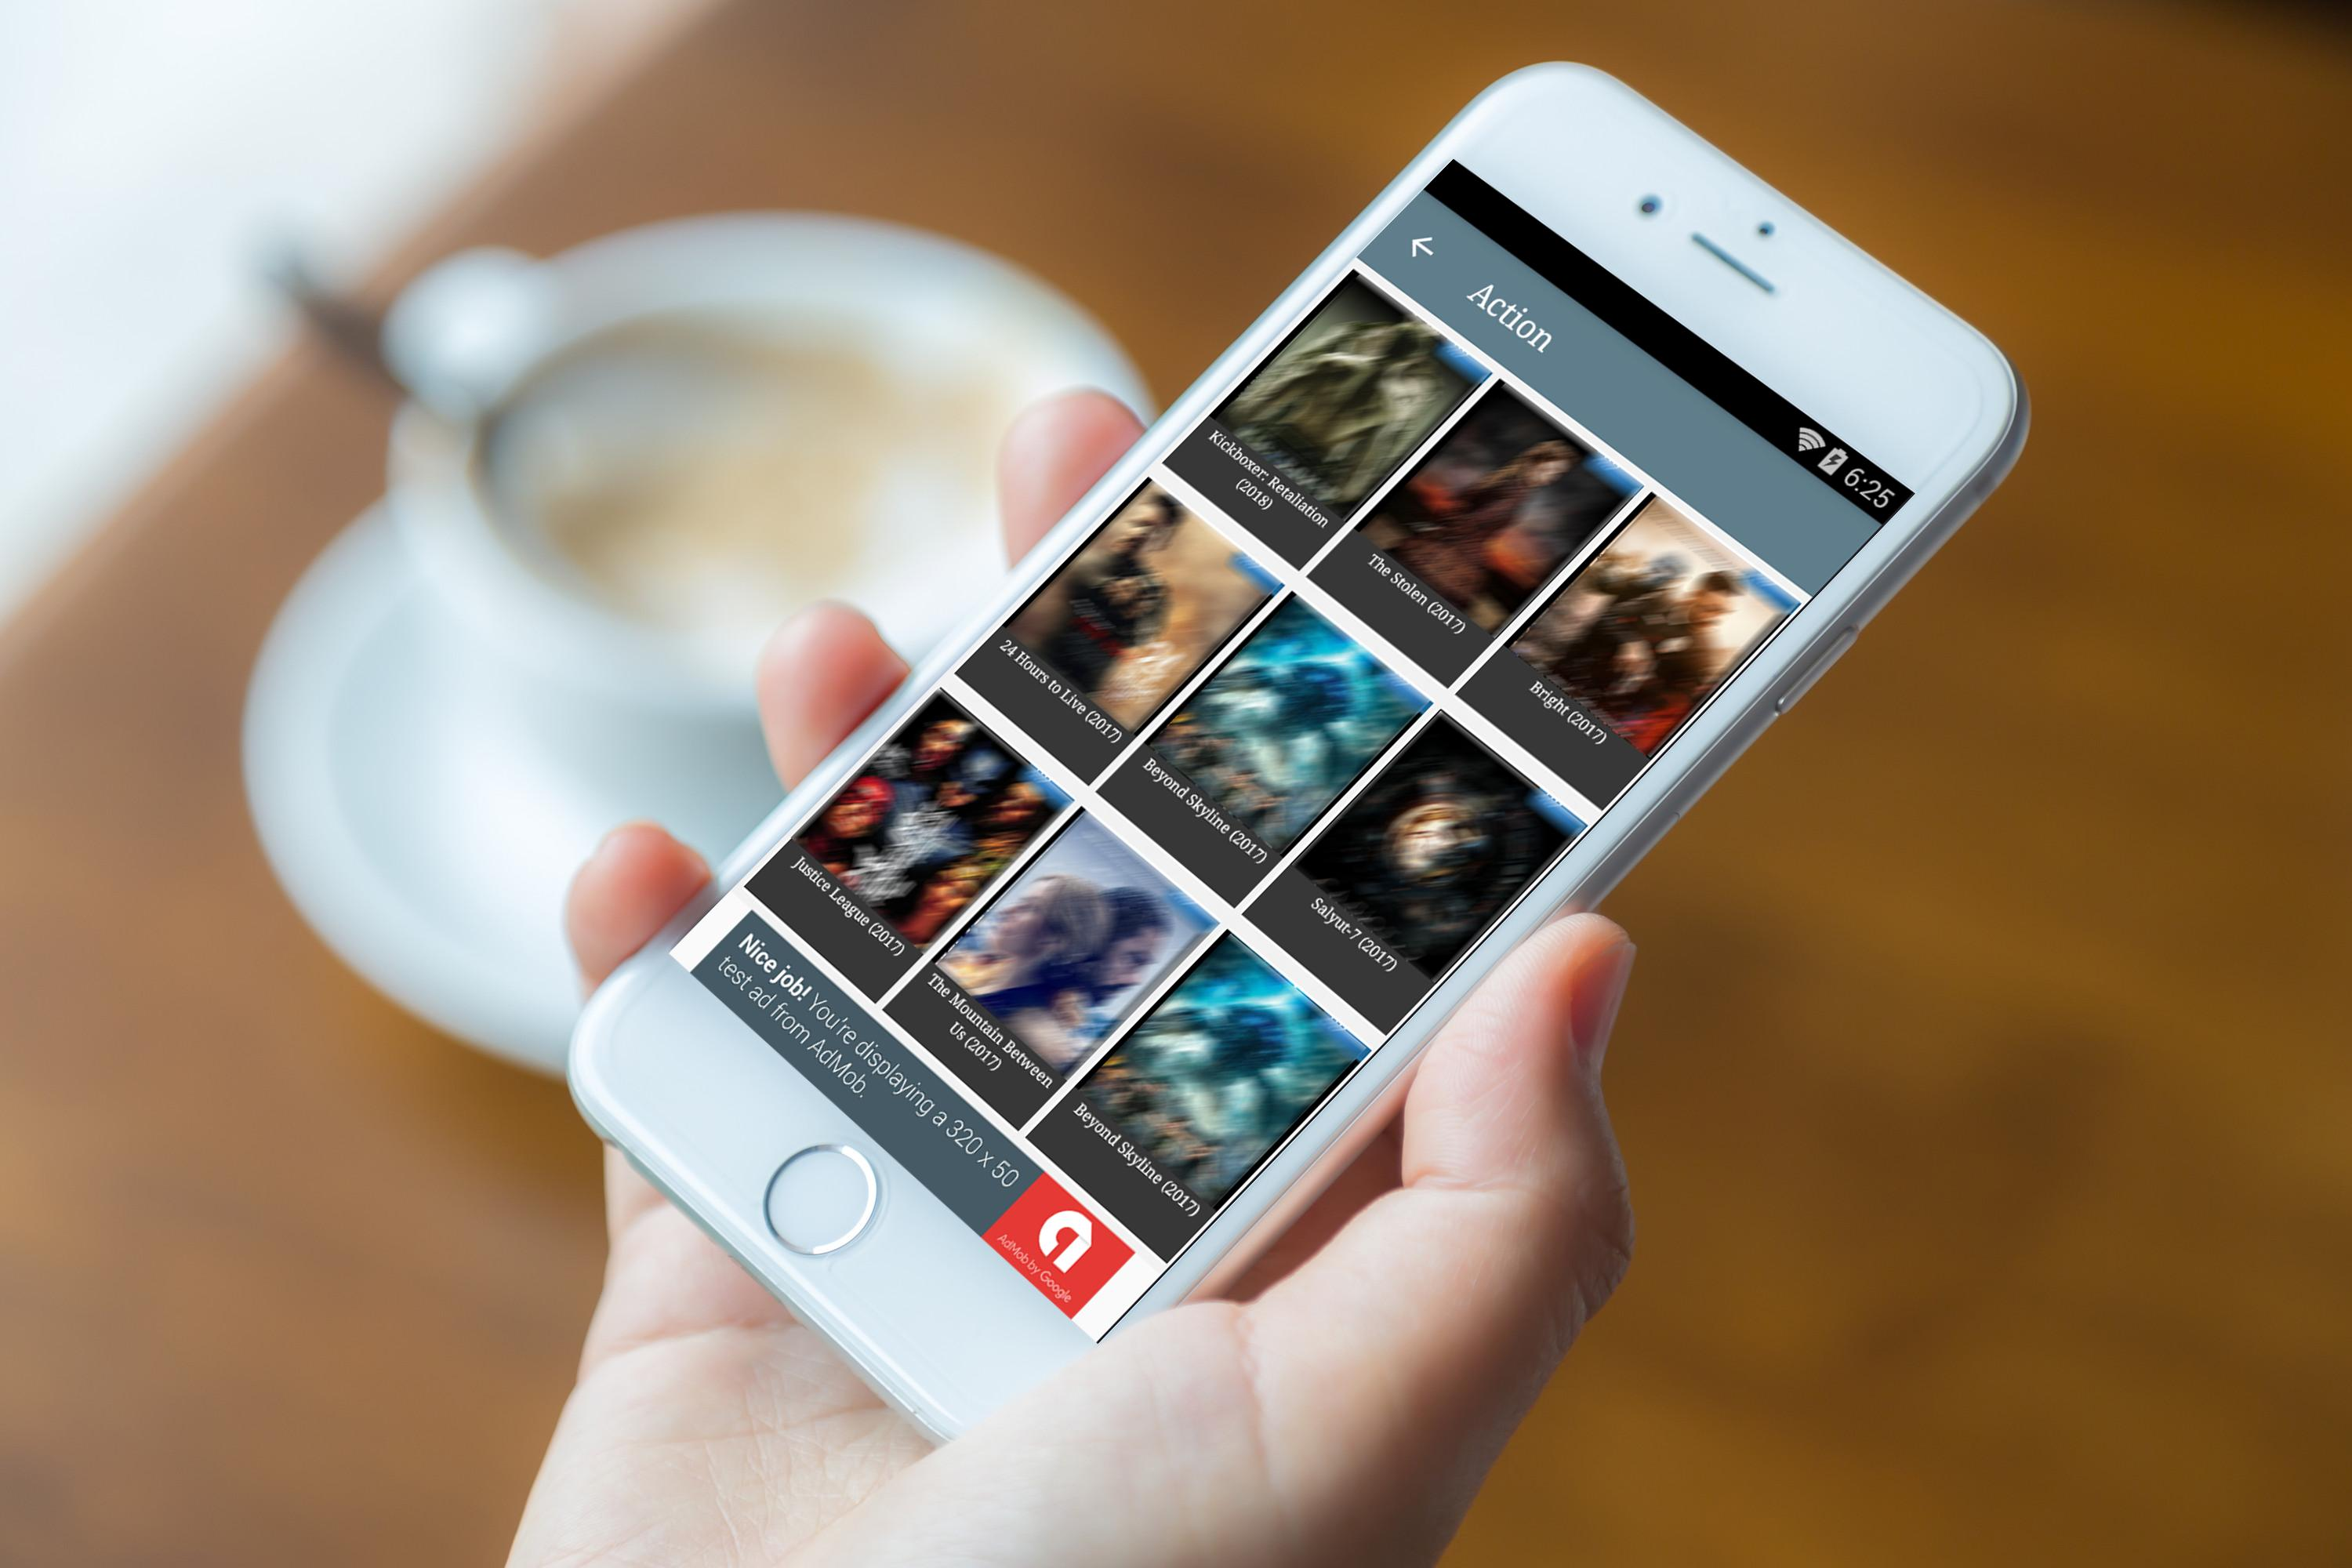 hd movies free download for iphone